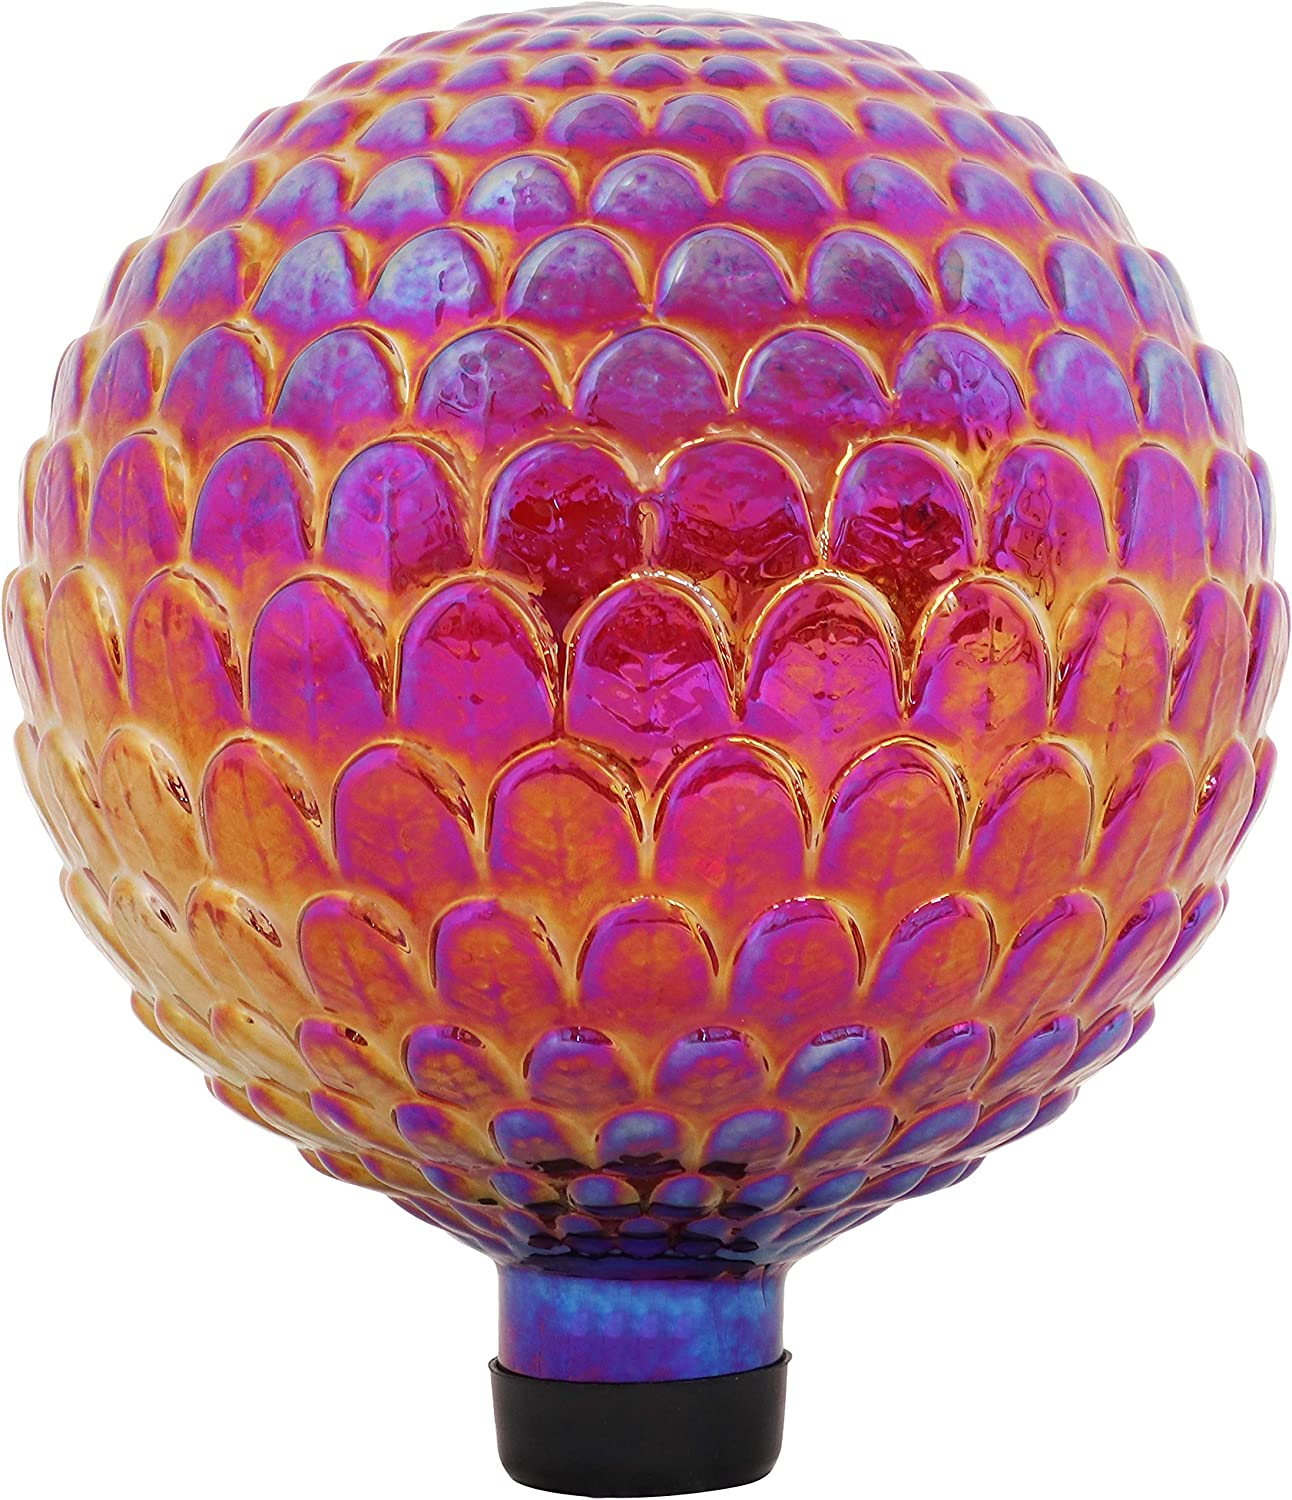 Sunnydaze Red Scalloped Texture Outdoor Gazing Globe Glass Garden Ball Decor - Outdoor, Patio, Lawn and Backyard Sphere Ornament Decoration - 10-Inch Size